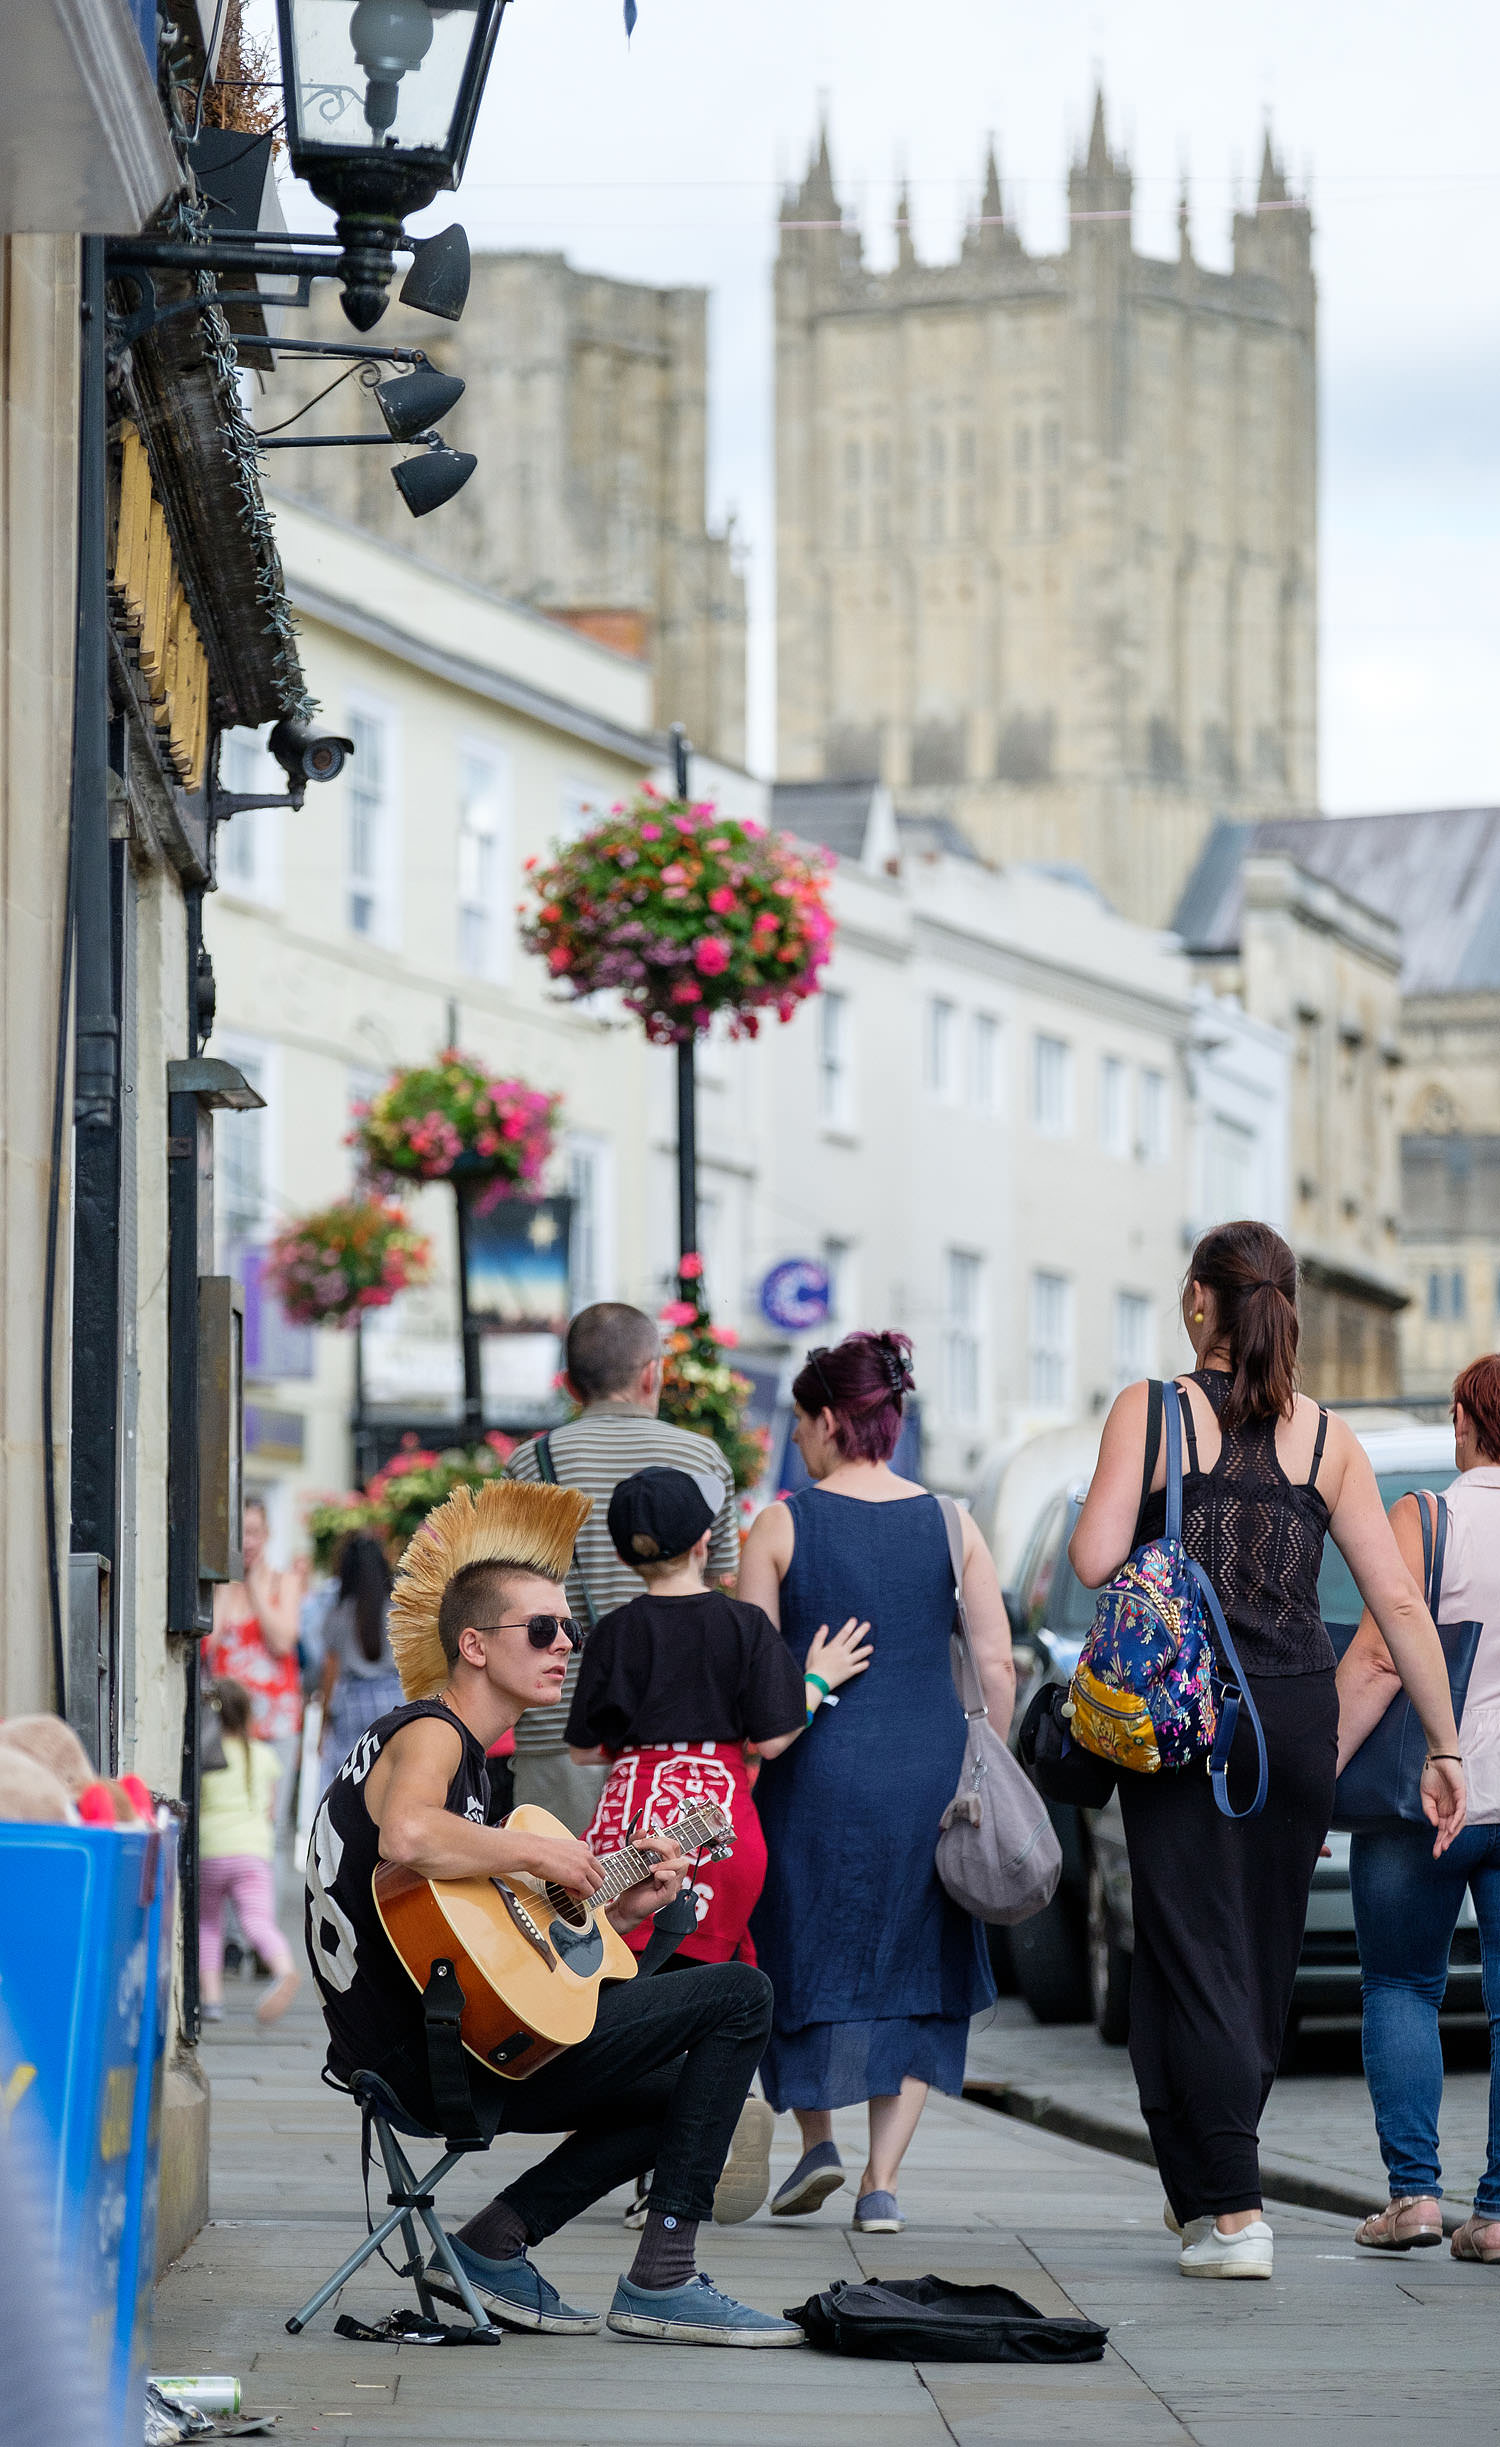 Musician on the Wells High Street (Wells, England)